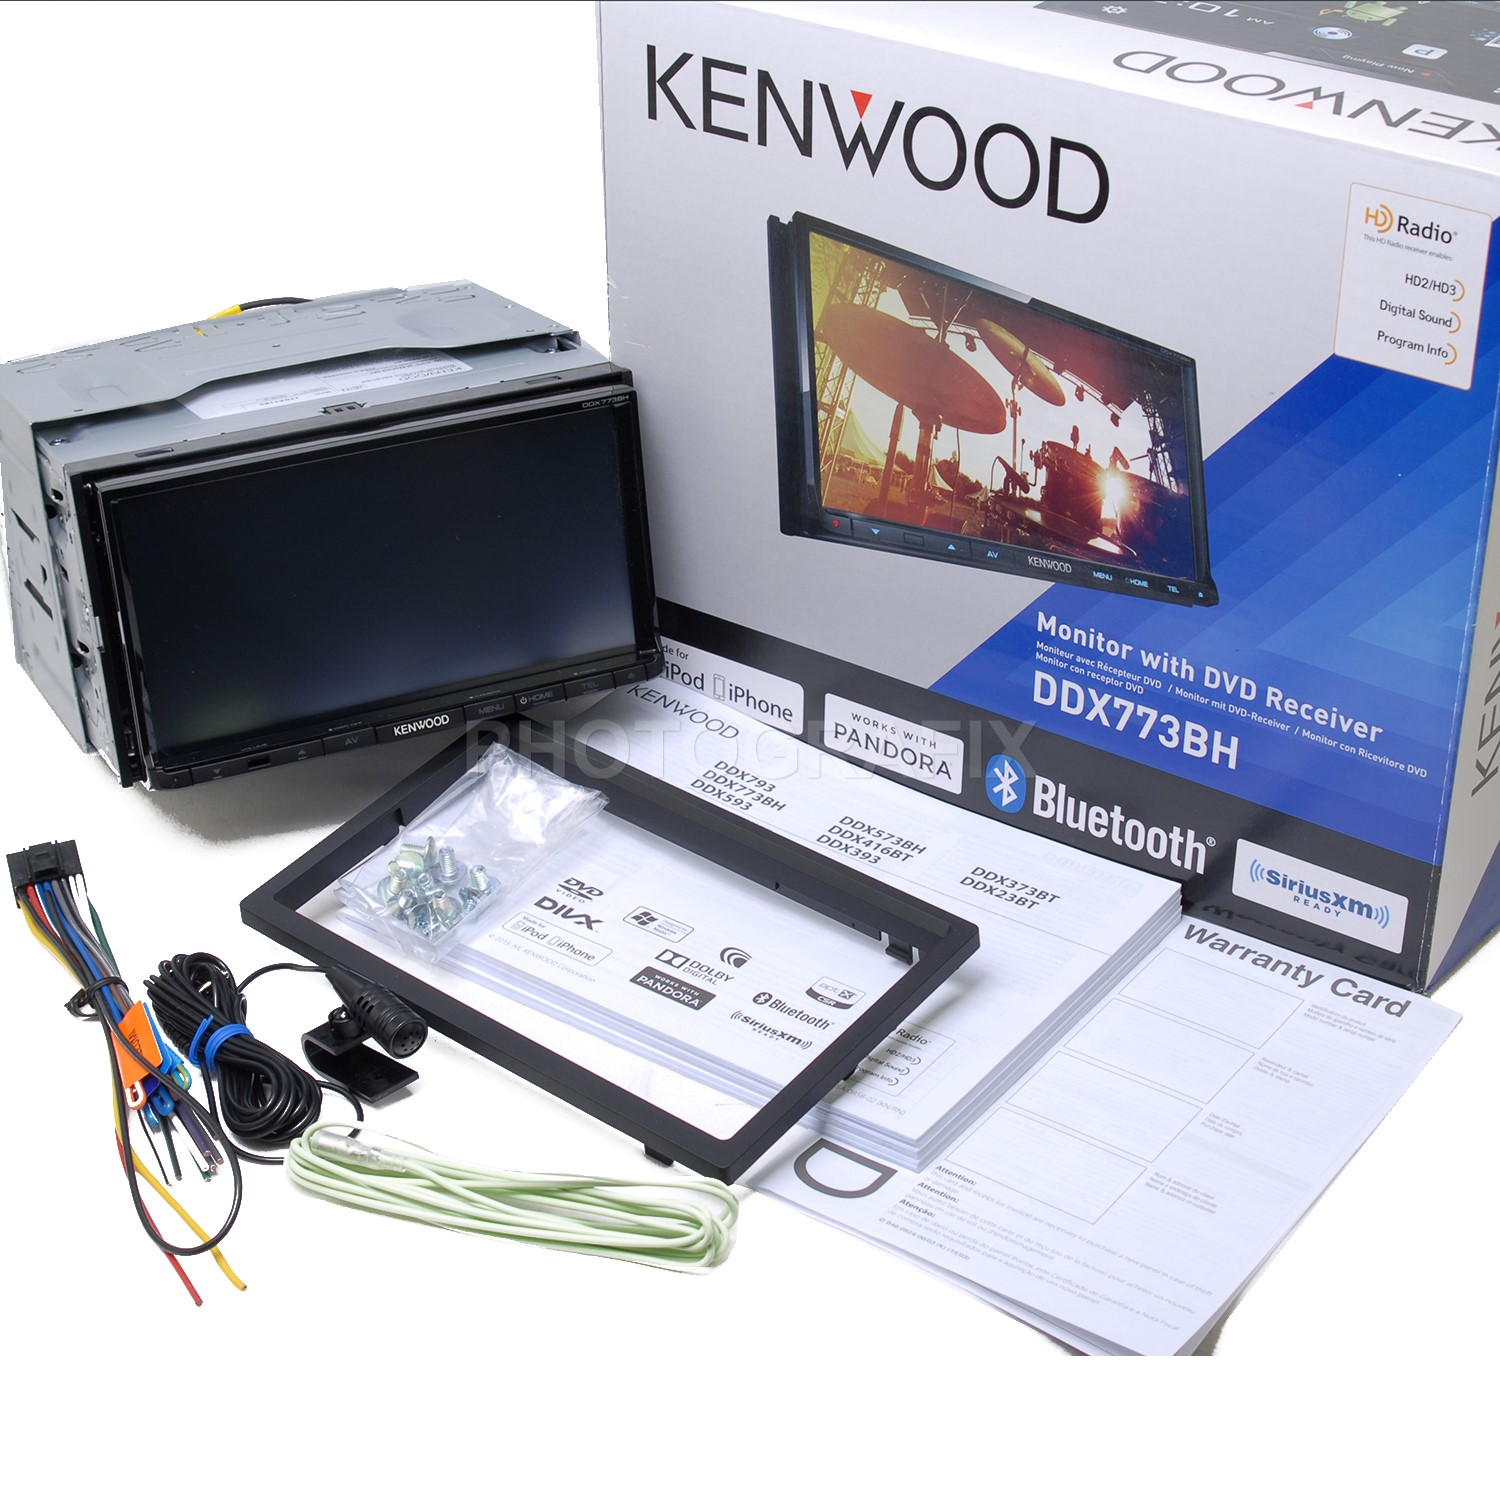 kenwood ddx773bh in dash double din dvd receiver built in. Black Bedroom Furniture Sets. Home Design Ideas